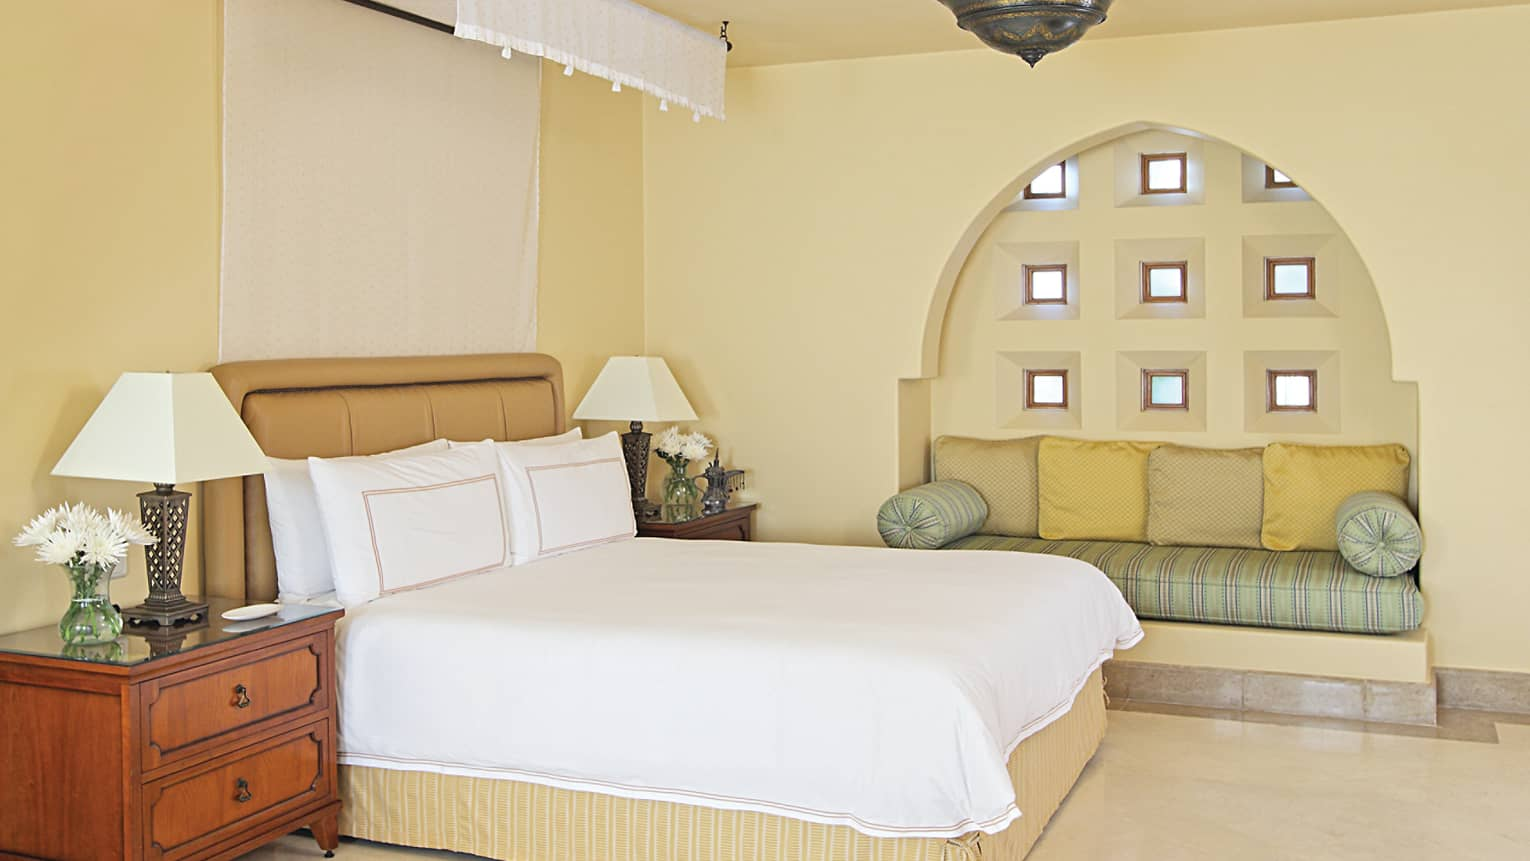 Hotel room bed, padded headboard, nightstands with lamps and flowers beside cushioned window seat